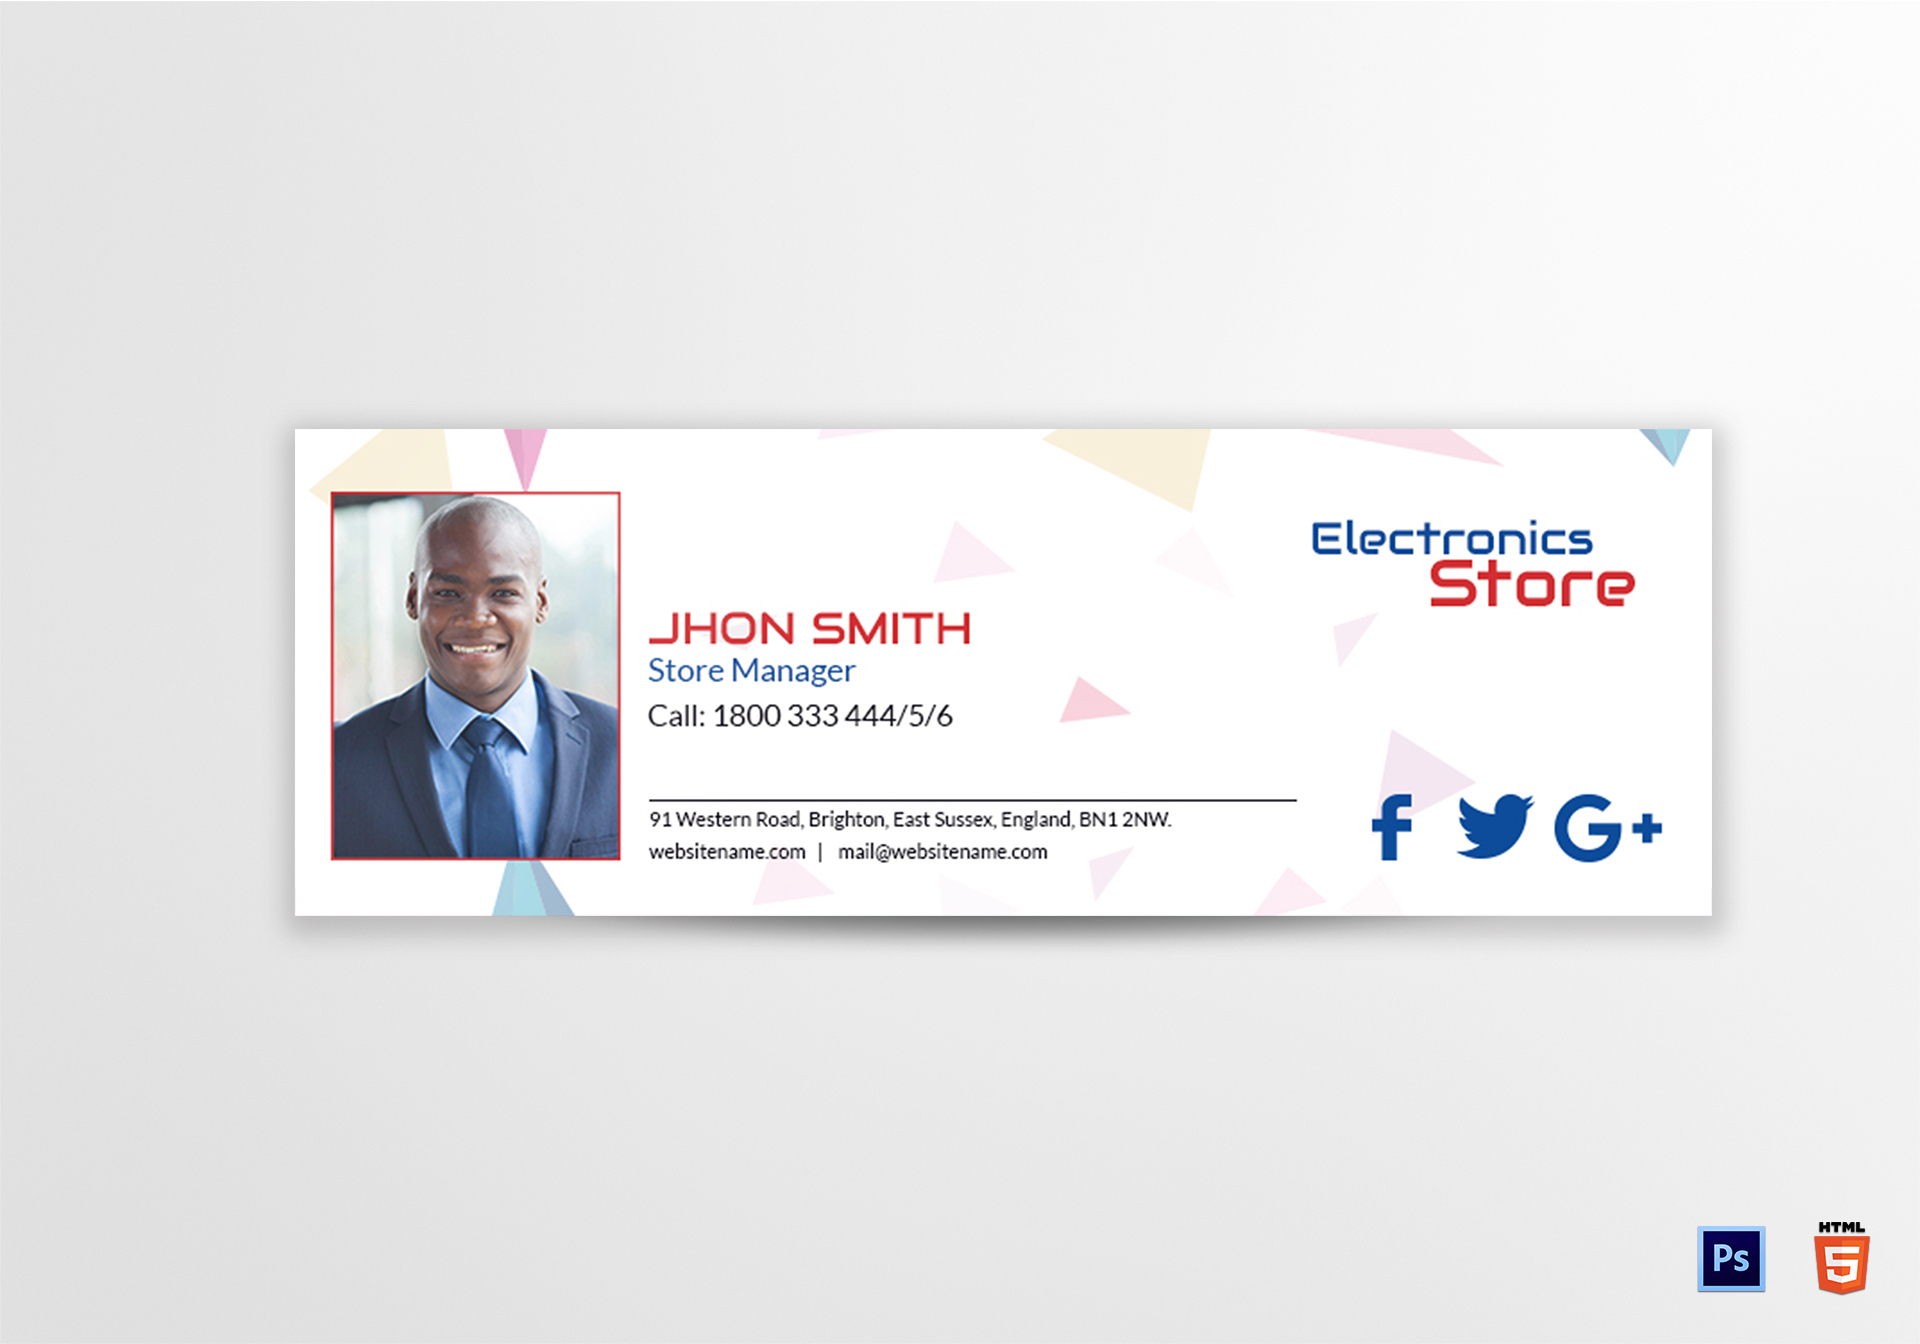 Electronic Store Email Signature